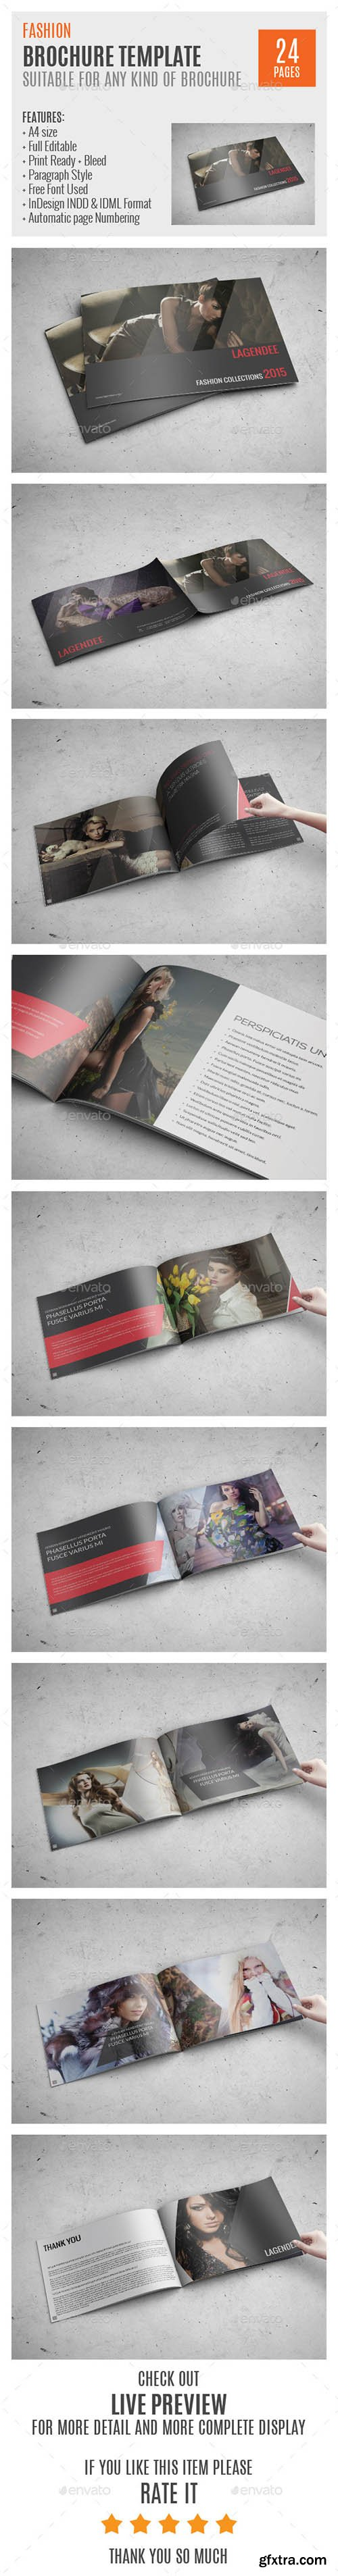 GraphicRiver Fashion A4 InDesign Brochure Template 0040 10374238